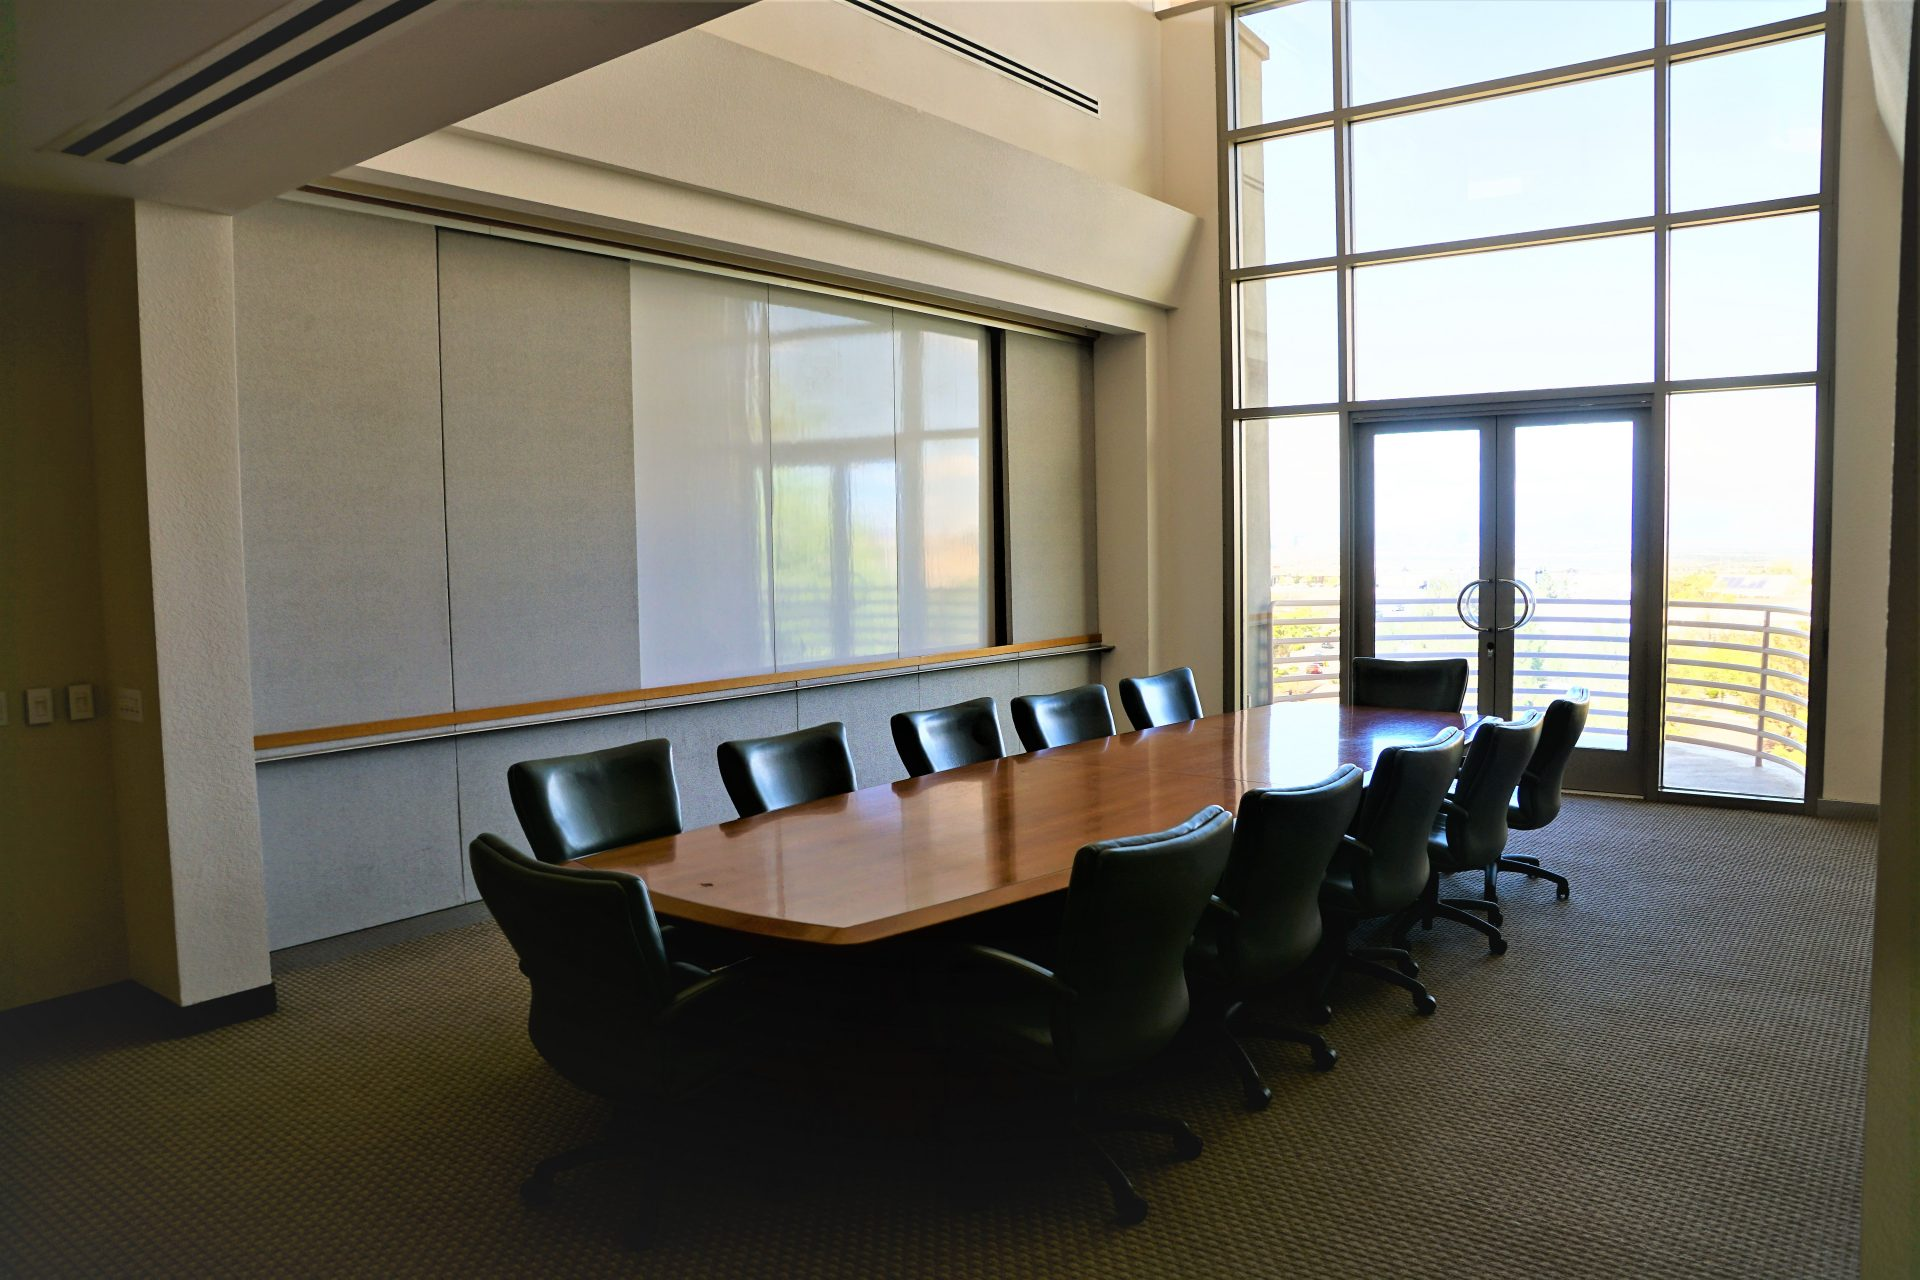 Boardroom with lots of windows, a conference table, and a white board